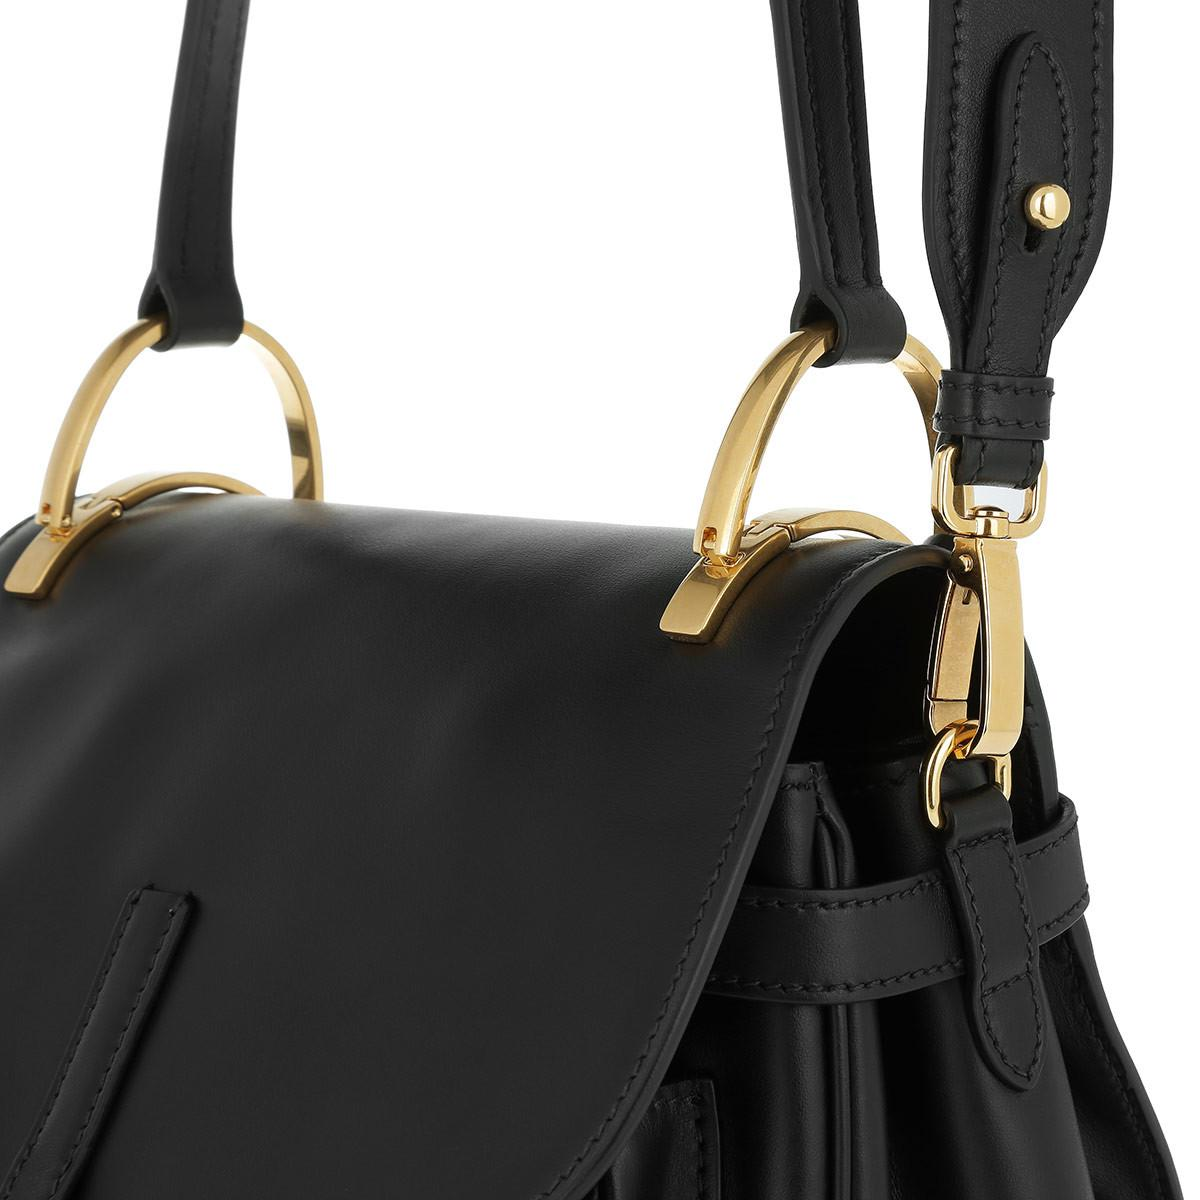 dda04b98d2e5 Prada Corsaire Satchel Bag Nero in Black - Lyst